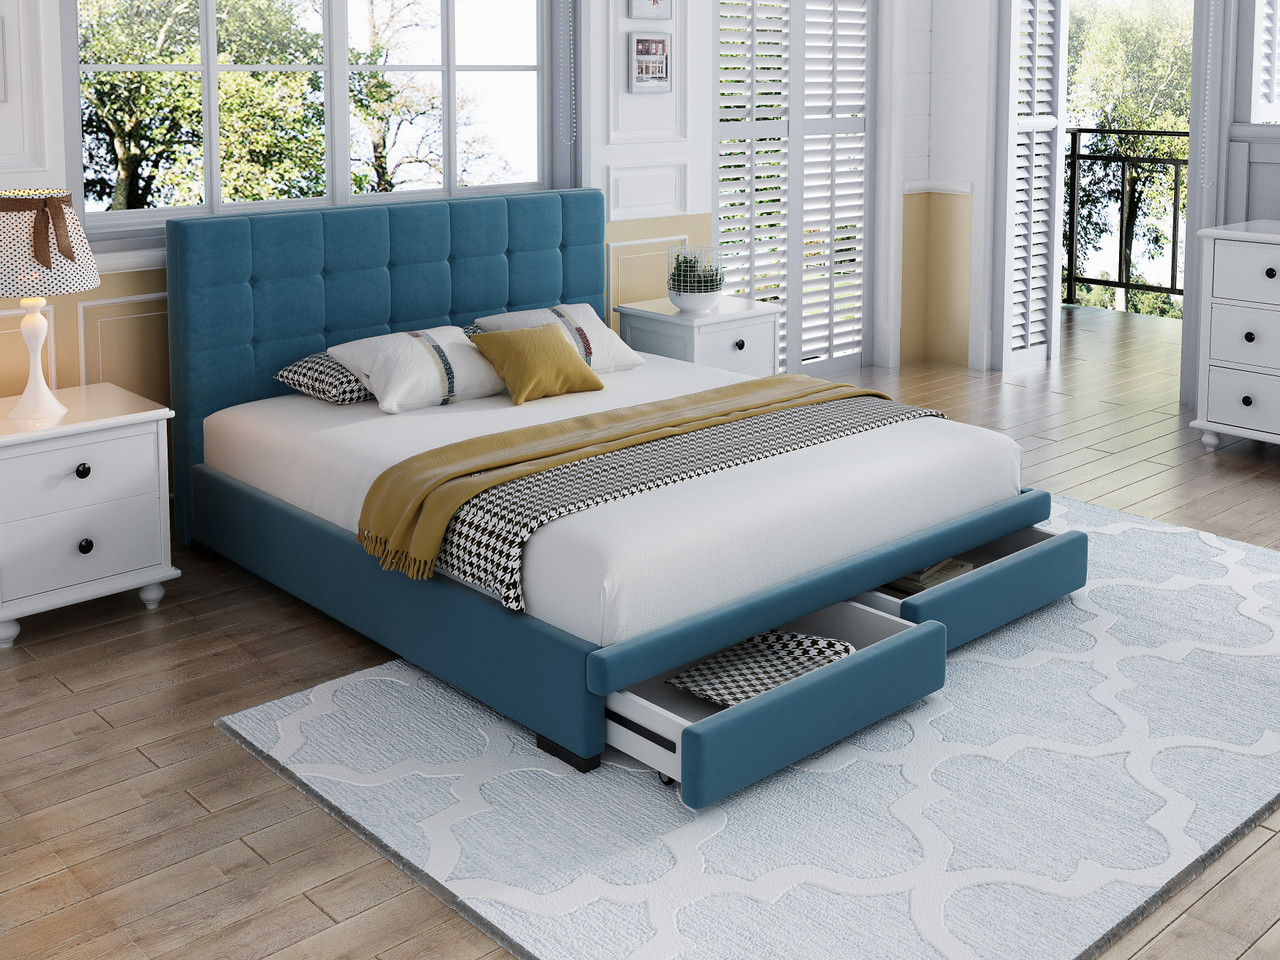 Brand New Velvet Bed Frame With Storage Drawers St8318 Hallams Home